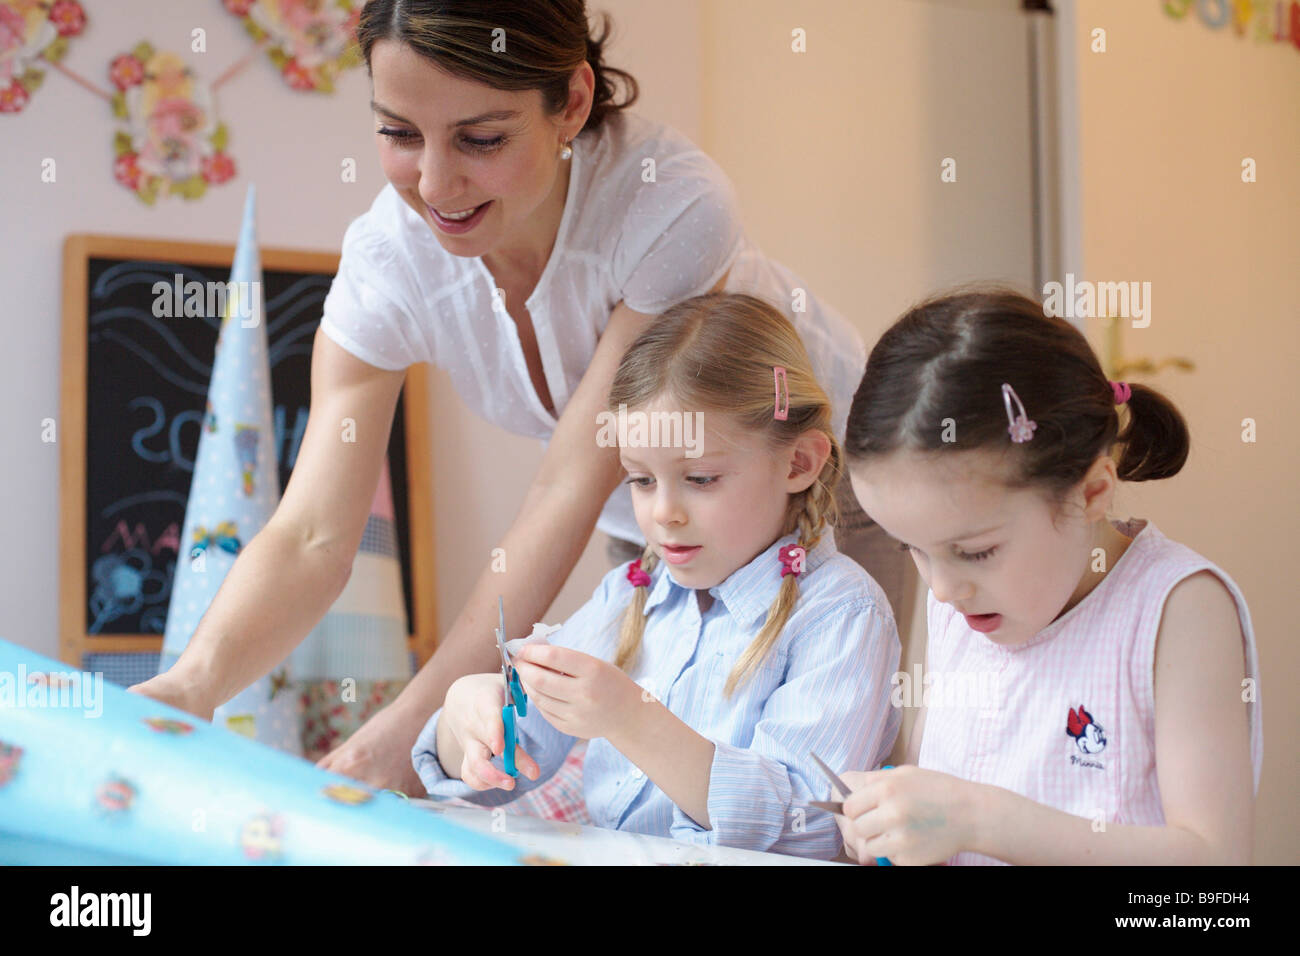 Woman helping her two daughters to decorate cardboard cone - Stock Image